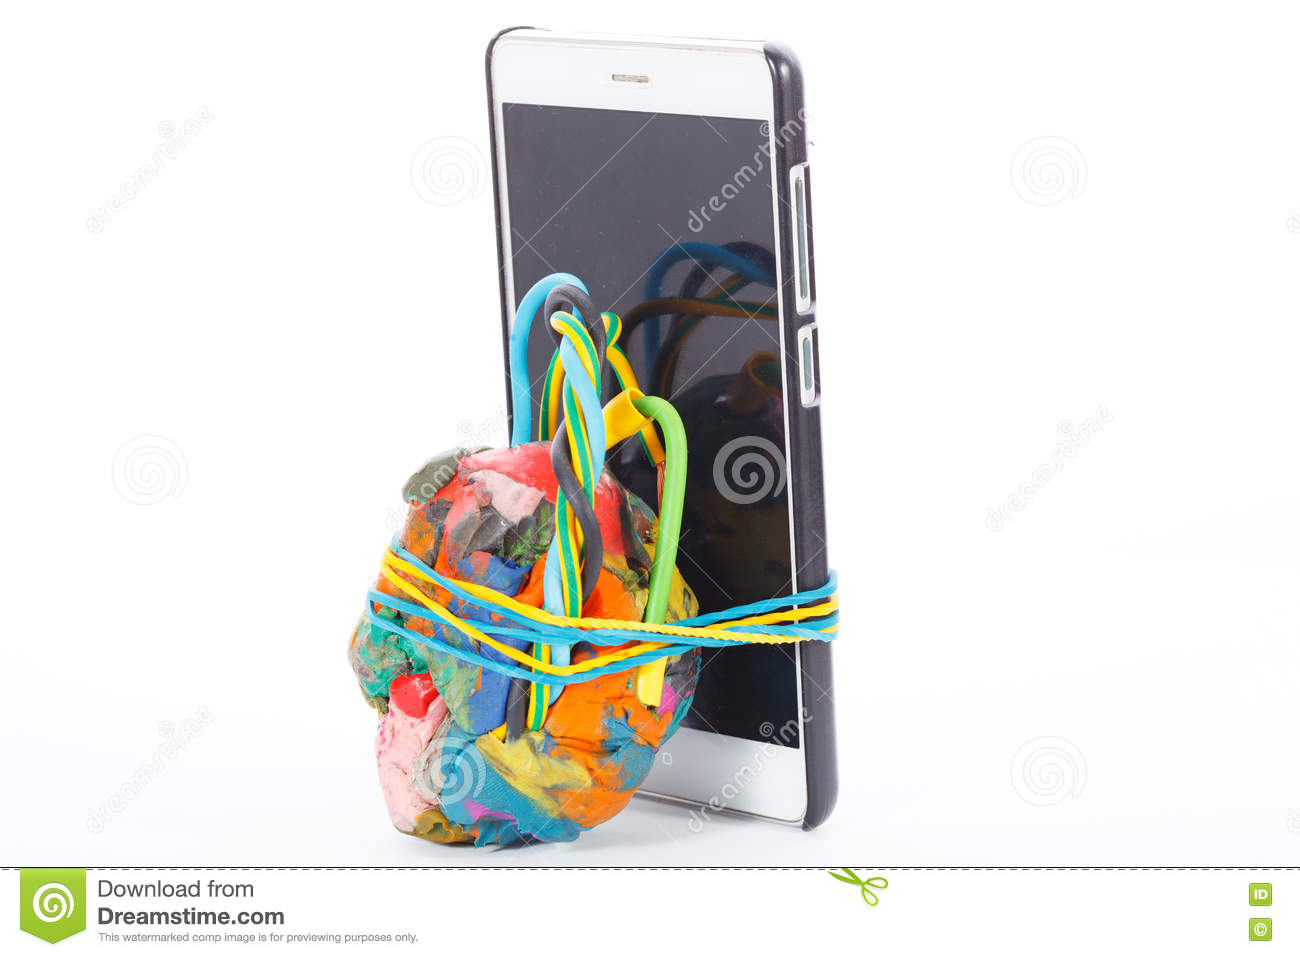 Improvised Explosive Device Connected To Cellphone Stock Photo ...